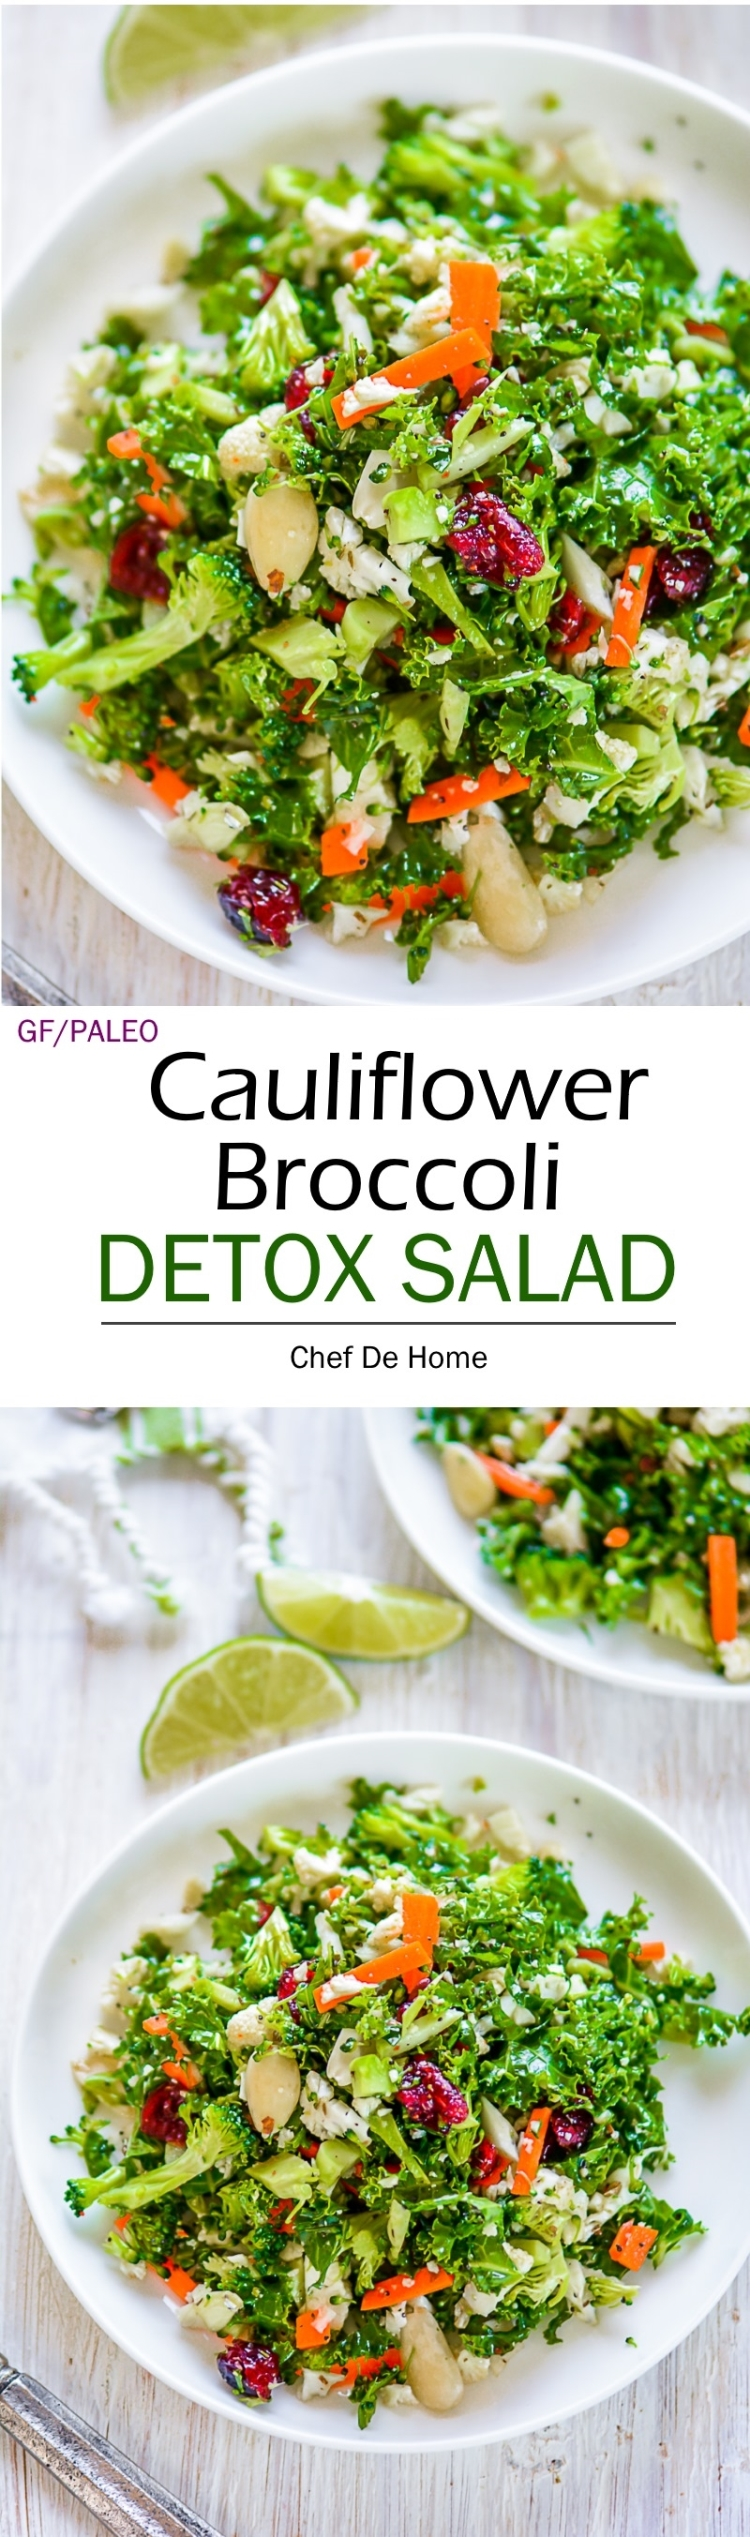 Easy healthy and perfect for summer body detox Broccoli and Cauliflower Detox Salad | chefdehome.com